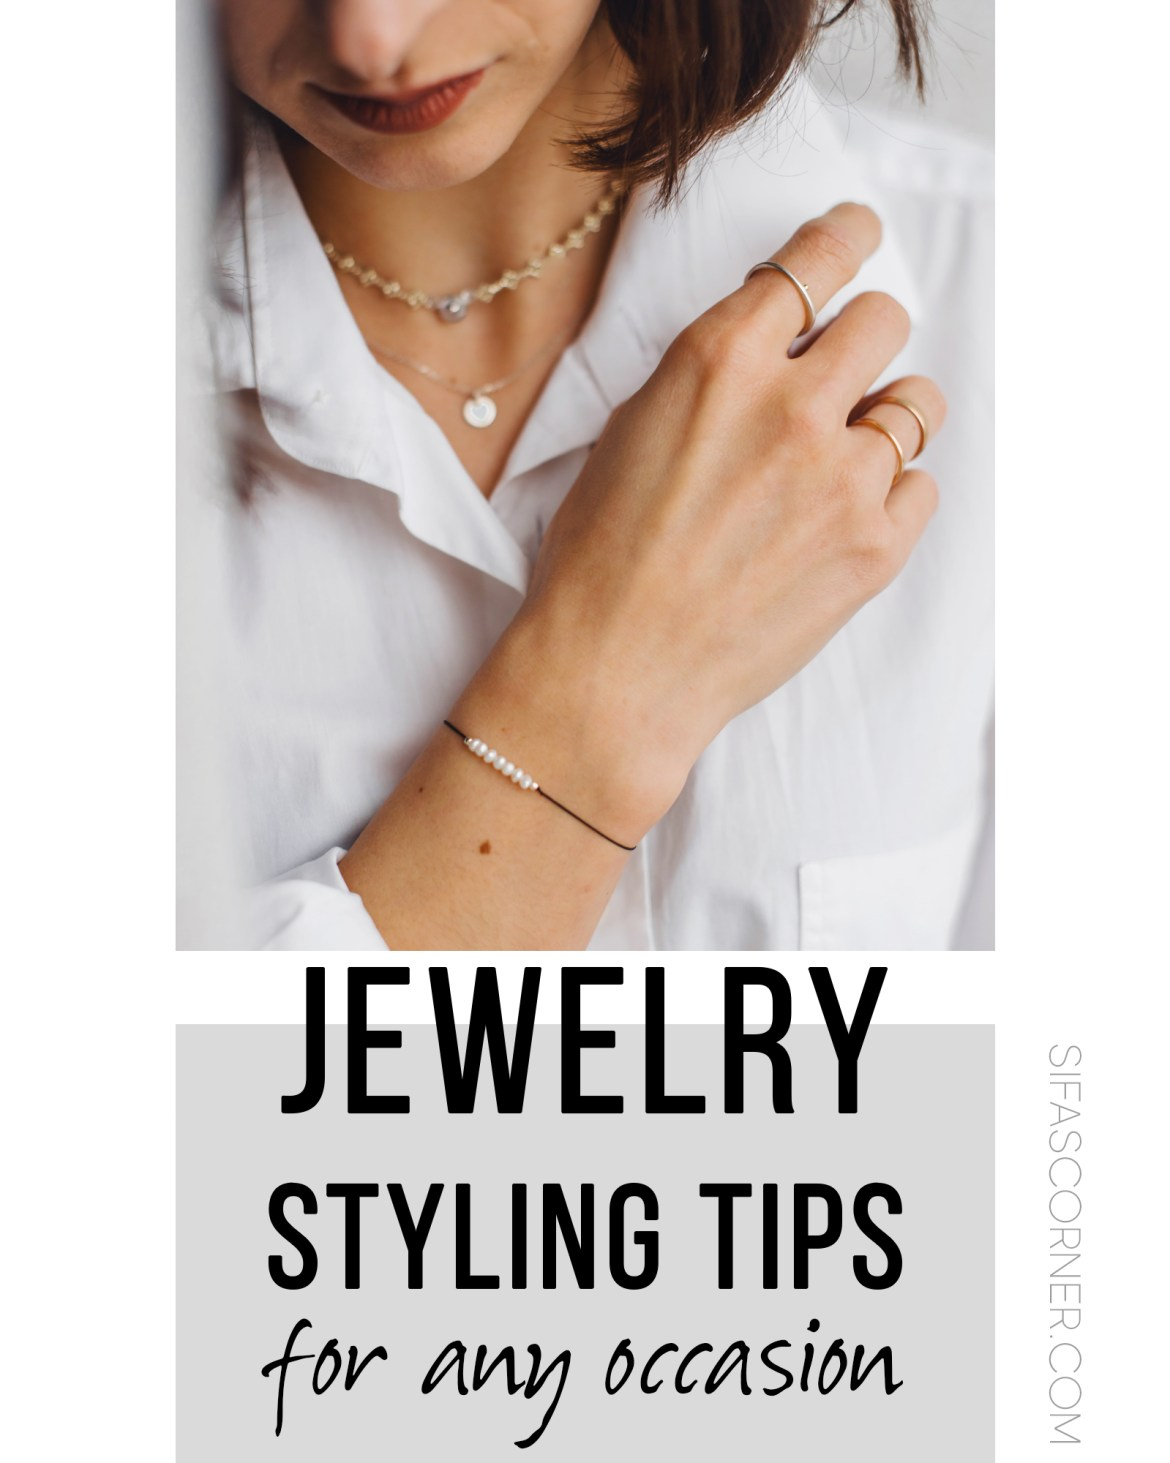 jewelry styling tips